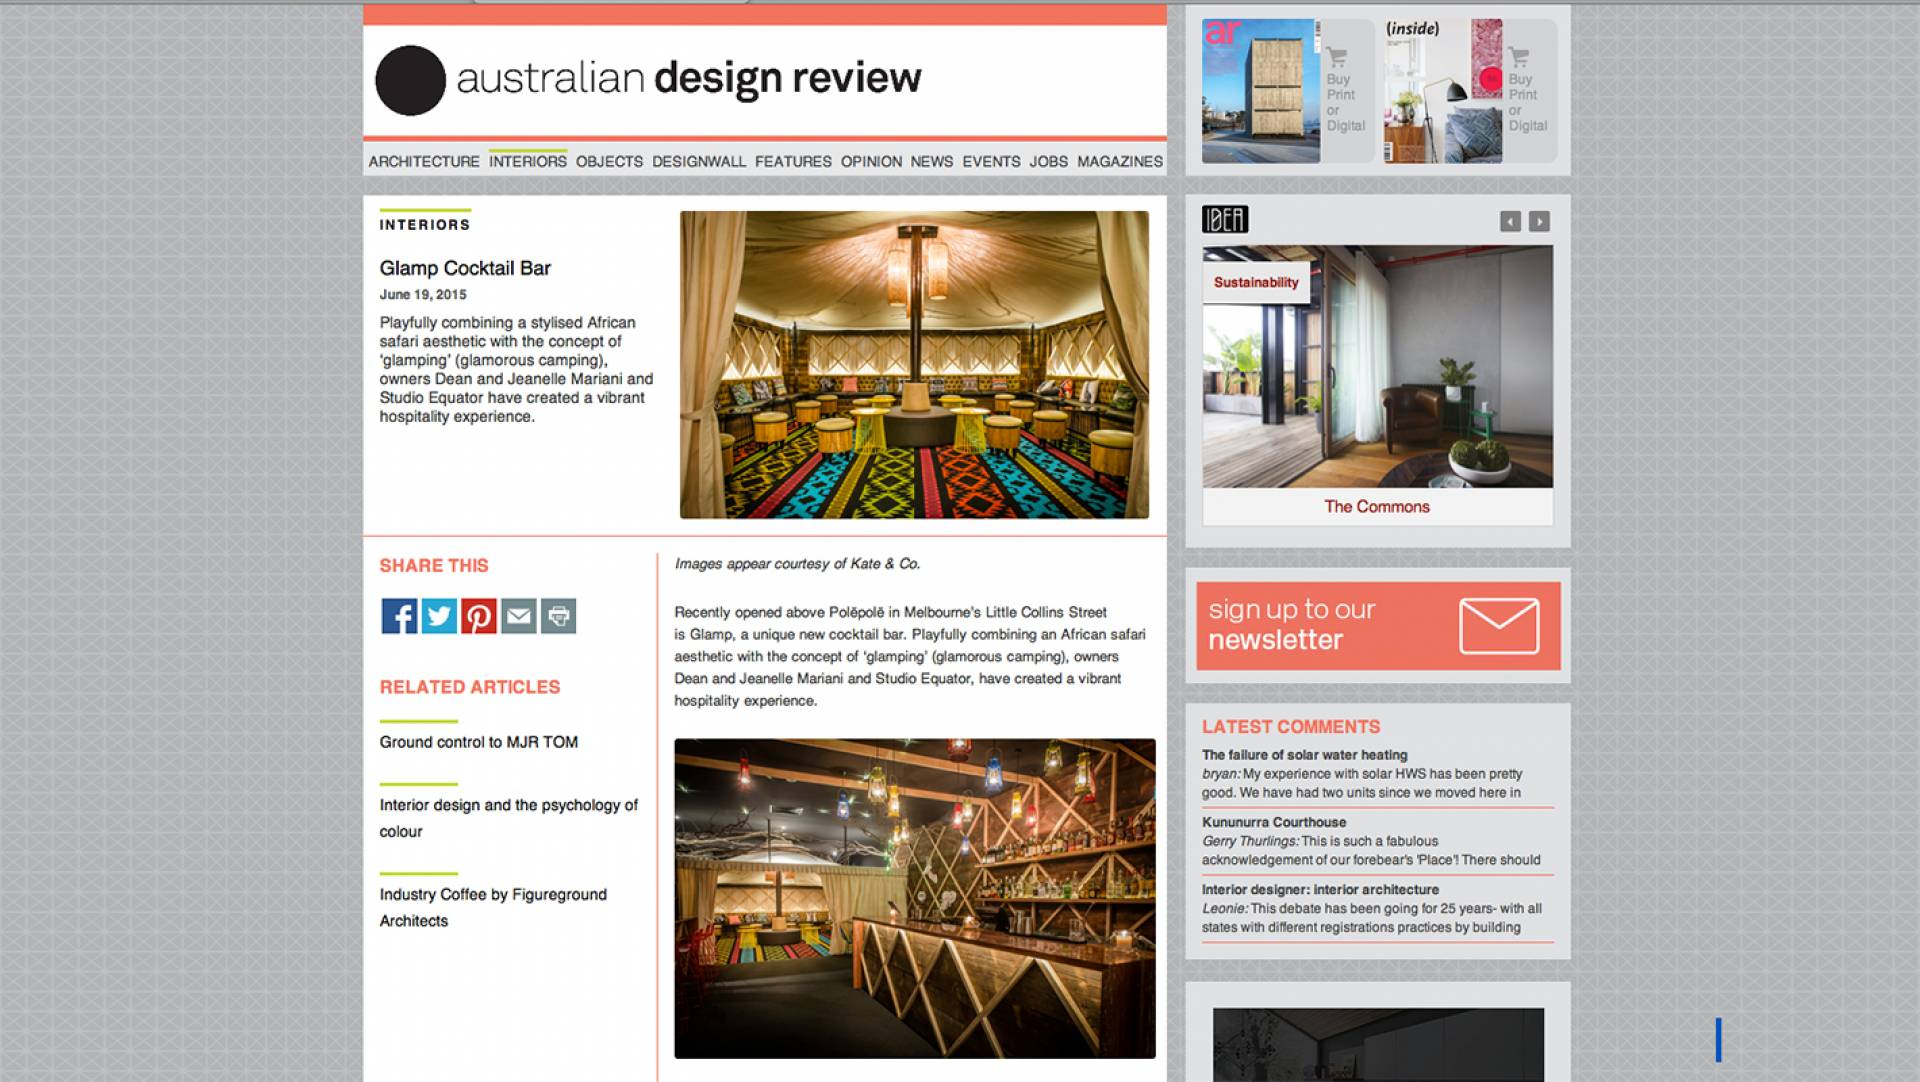 Australian Design Review Publishes Glamp Cocktail Bar Interiors